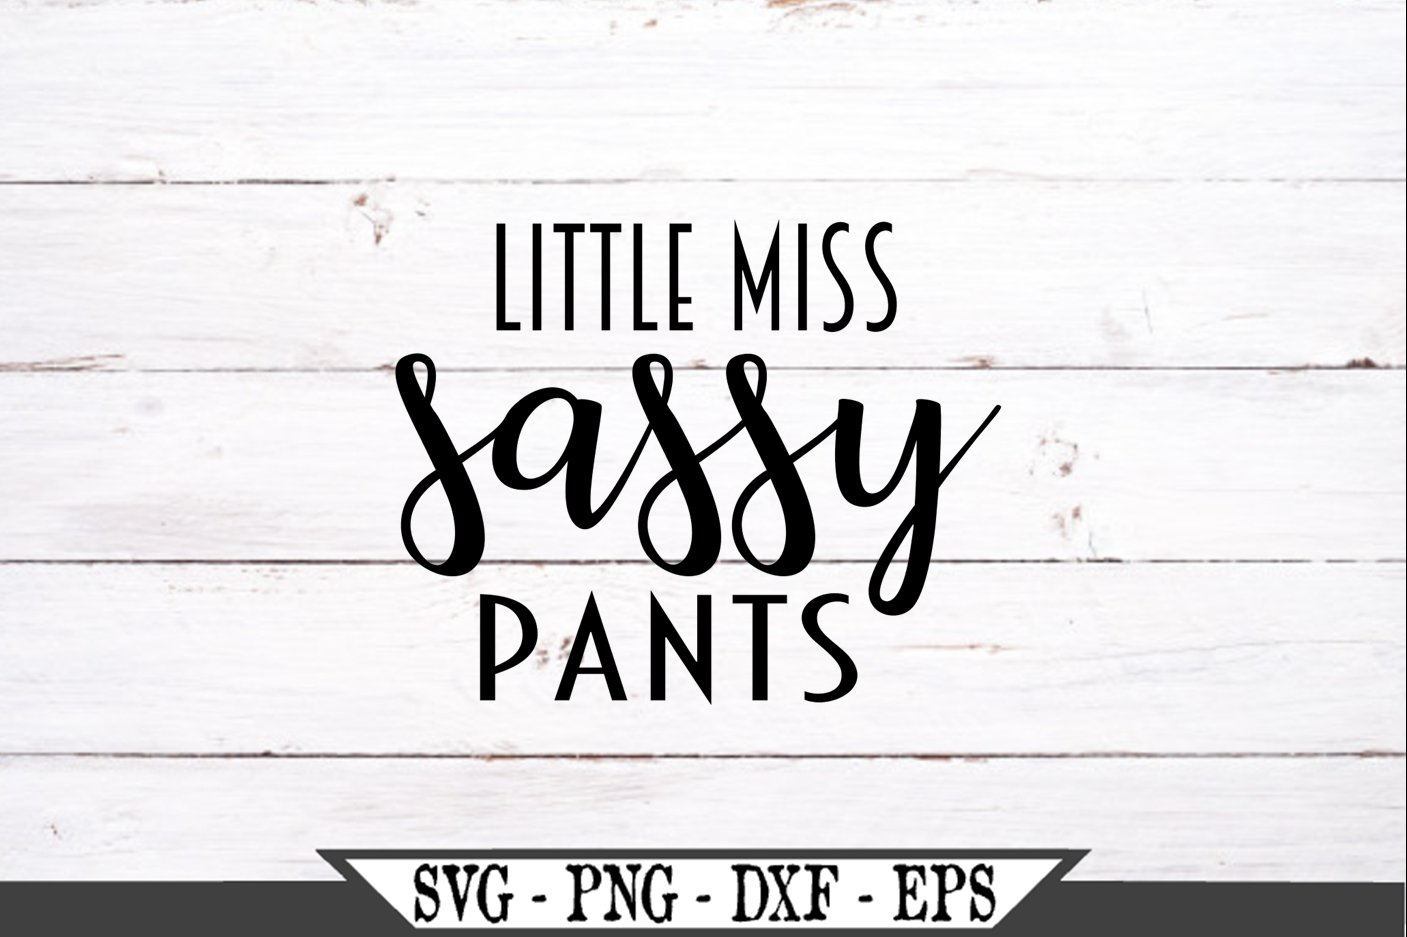 Little Miss Sassy Pants SVG example image 2